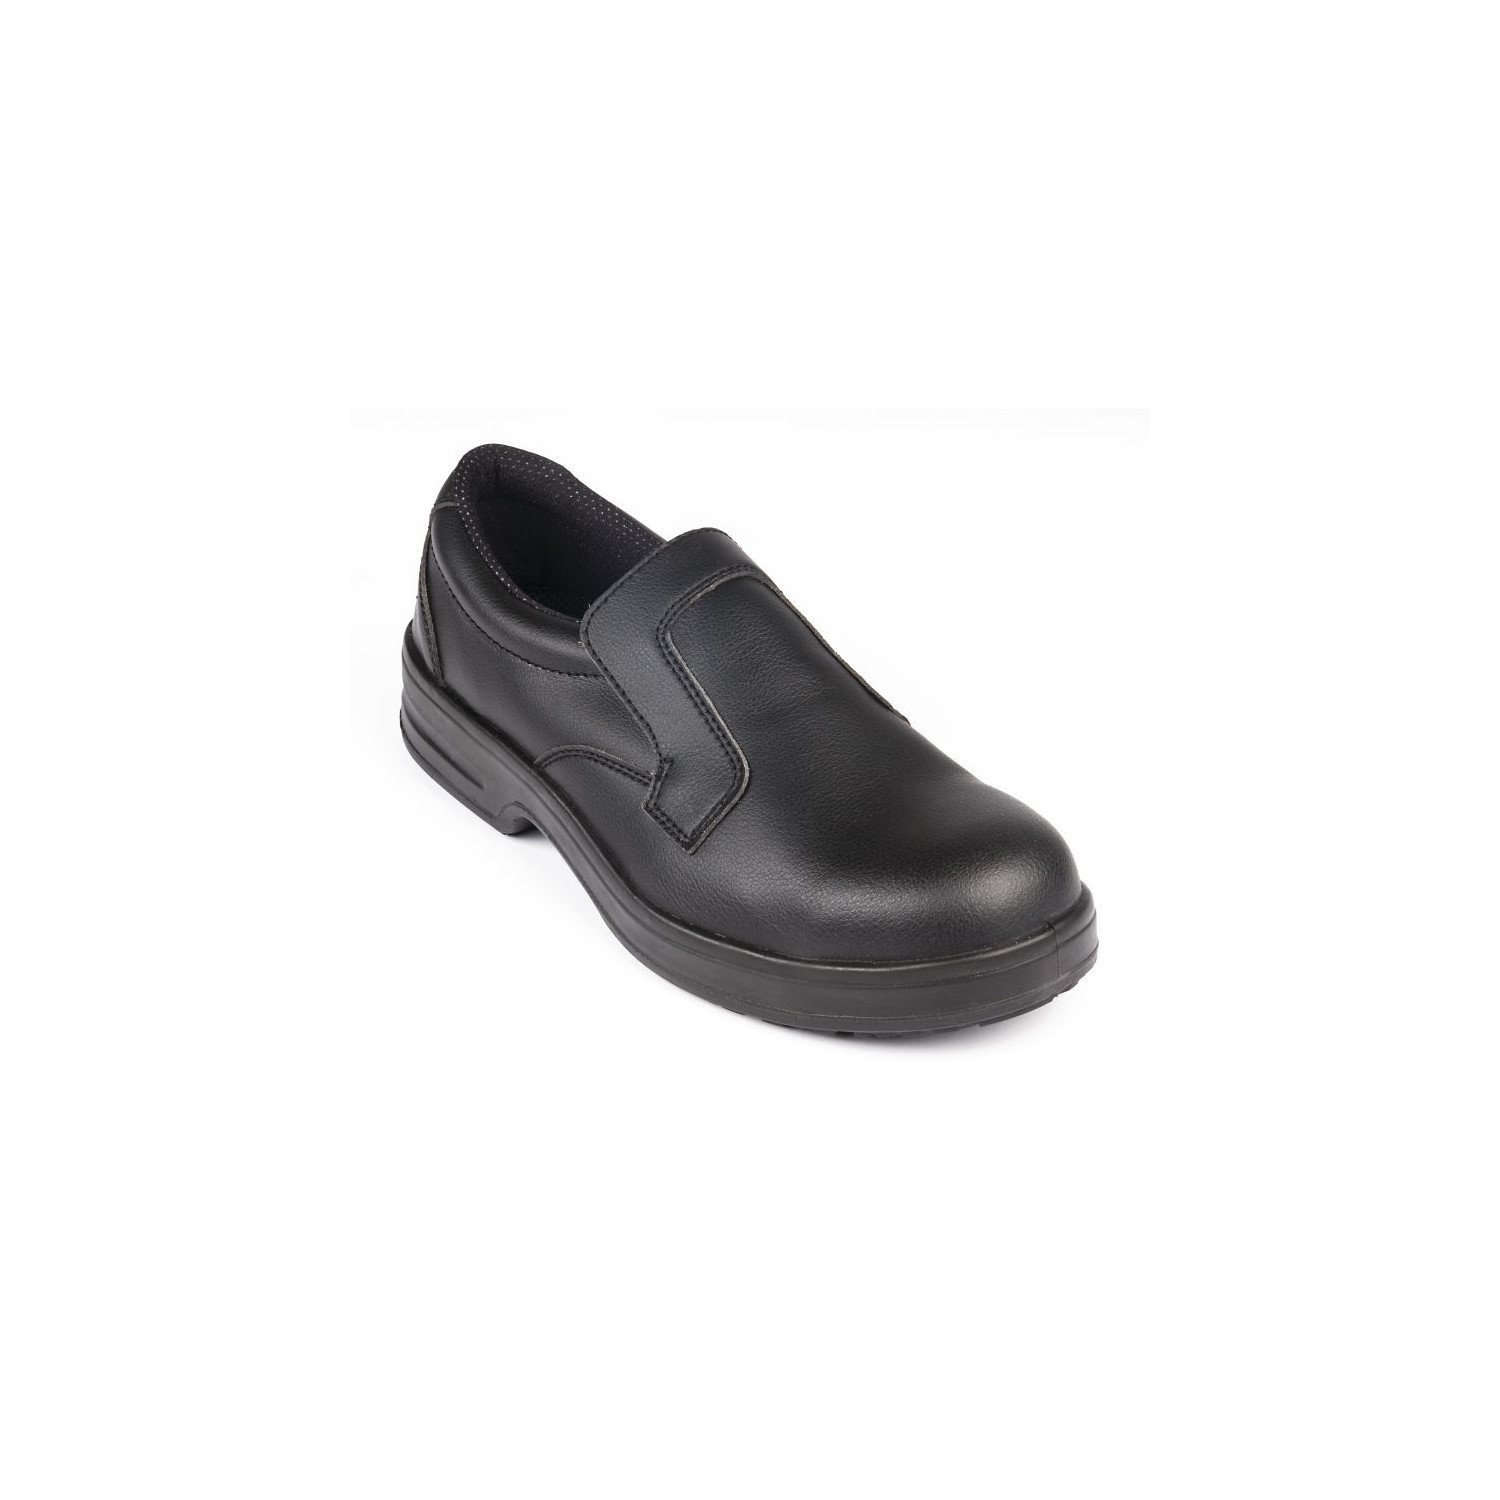 Mocassins imperméables/lavables noirs T.36 LITES SAFETY FOOTWEAR Nisbets Vêtements